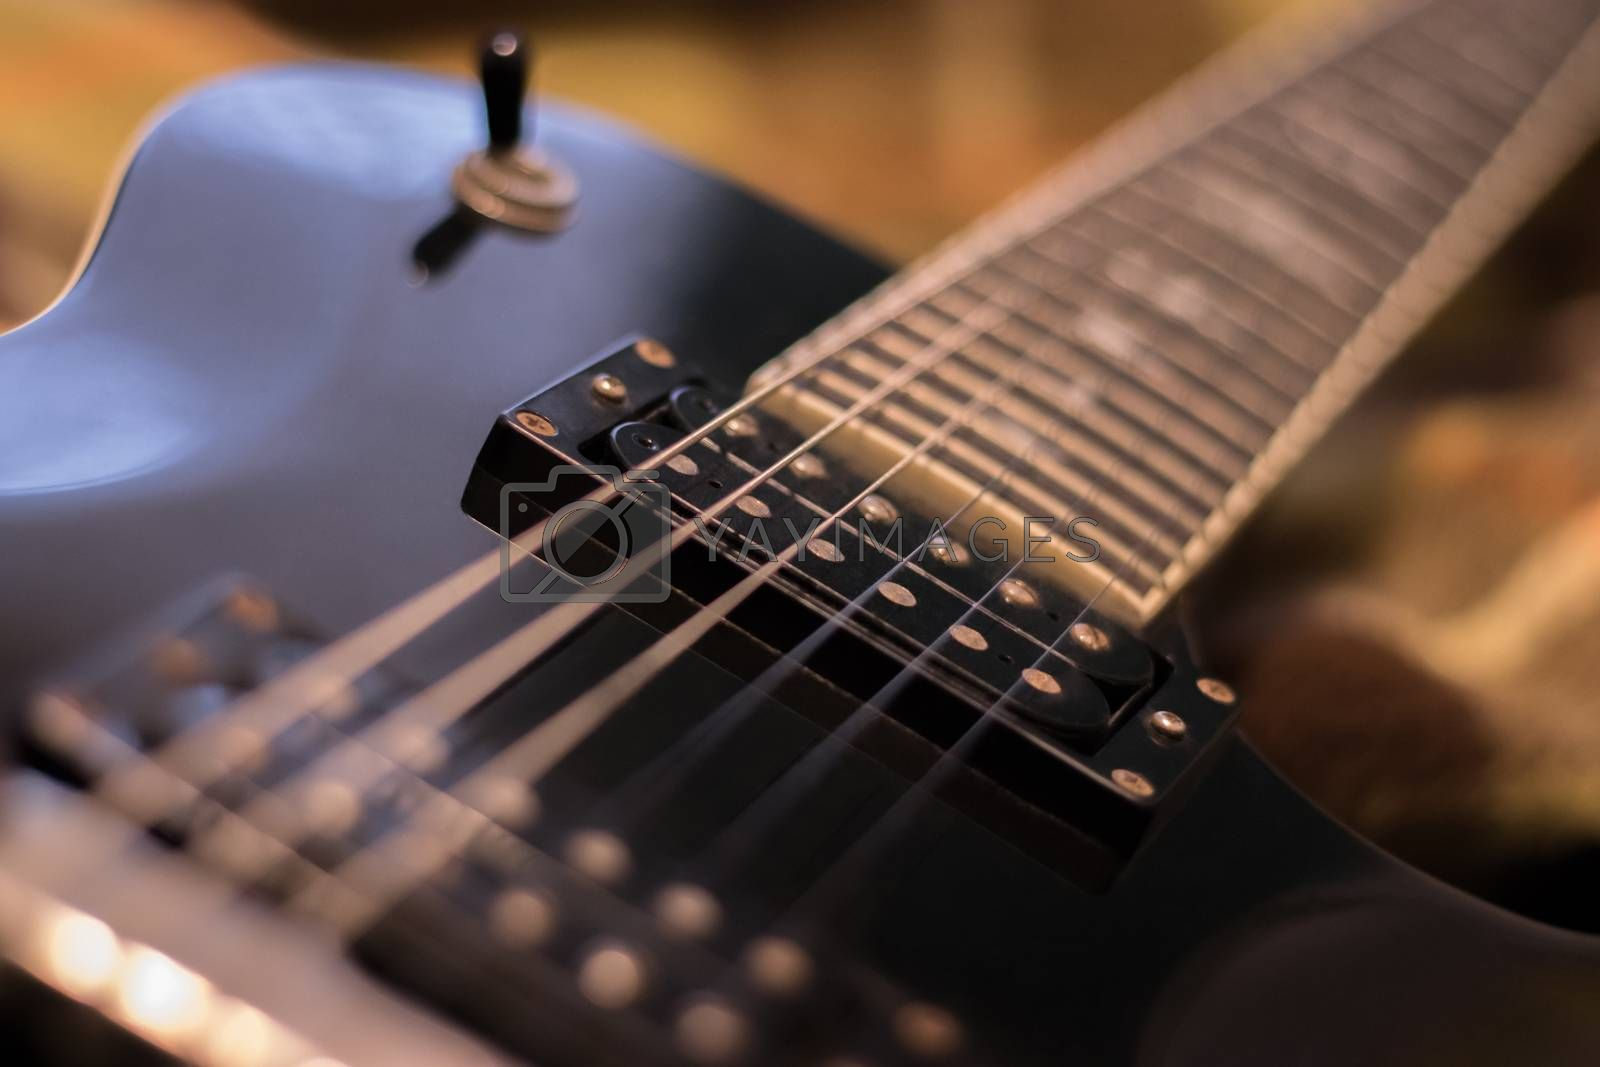 Fragment of the black electric guitar deck, pickup, neck and strings. Warm tones